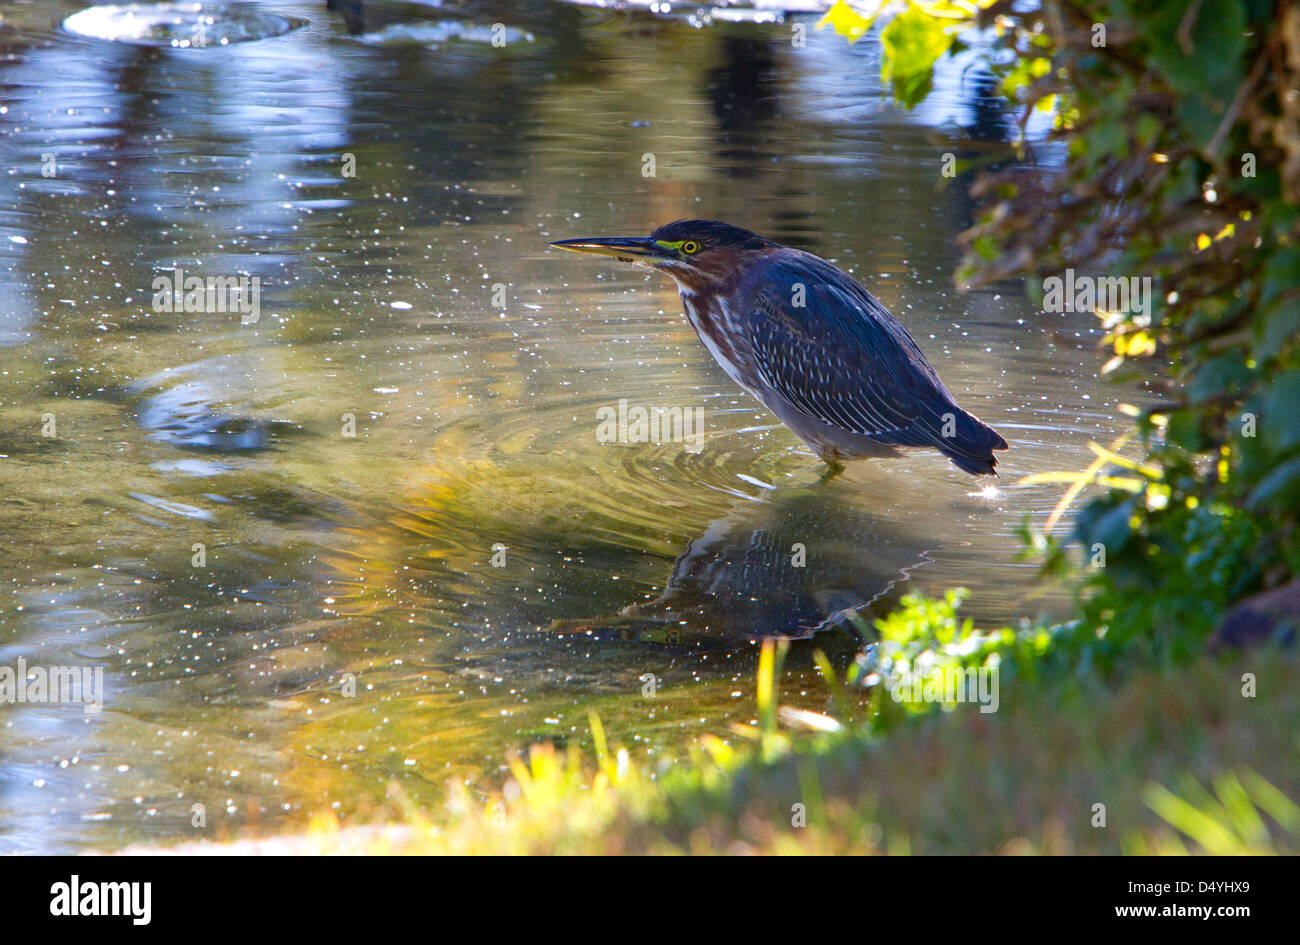 Green Heron (Butorides virescens) standing poised in a pond at Rancho Mirage, California, USA in January - Stock Image